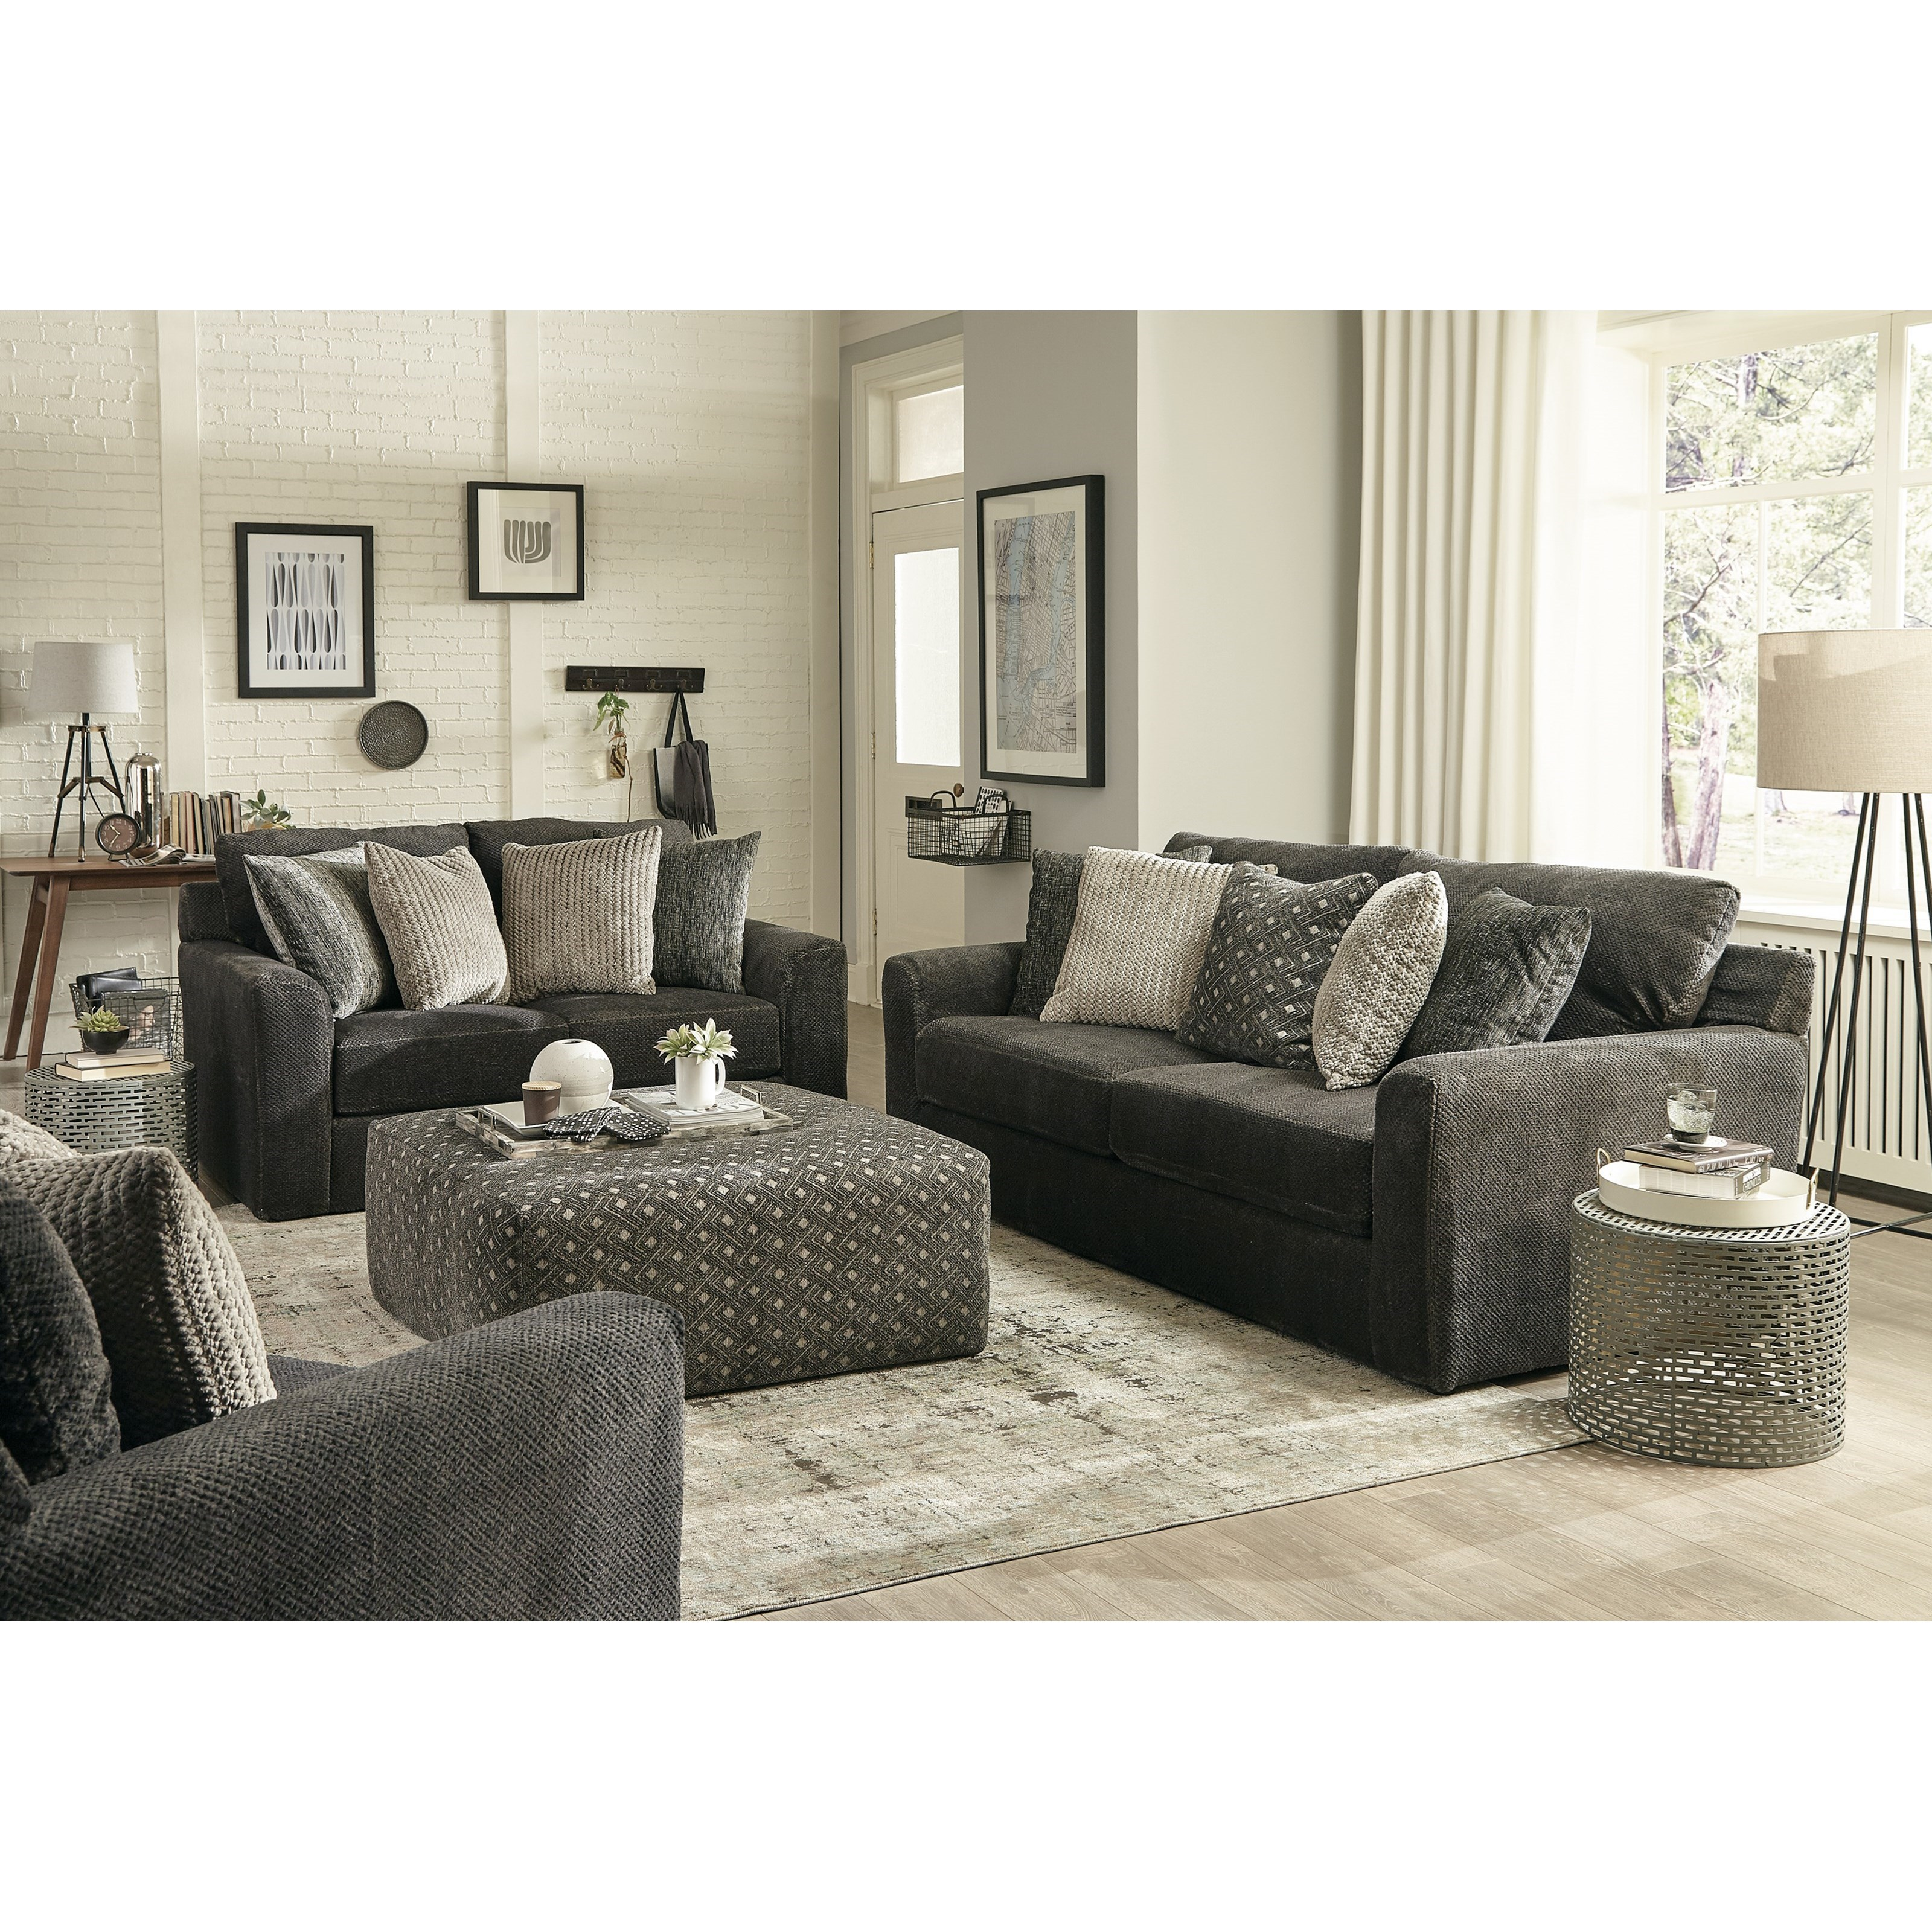 Midwood Living Room Group by Jackson Furniture at Northeast Factory Direct